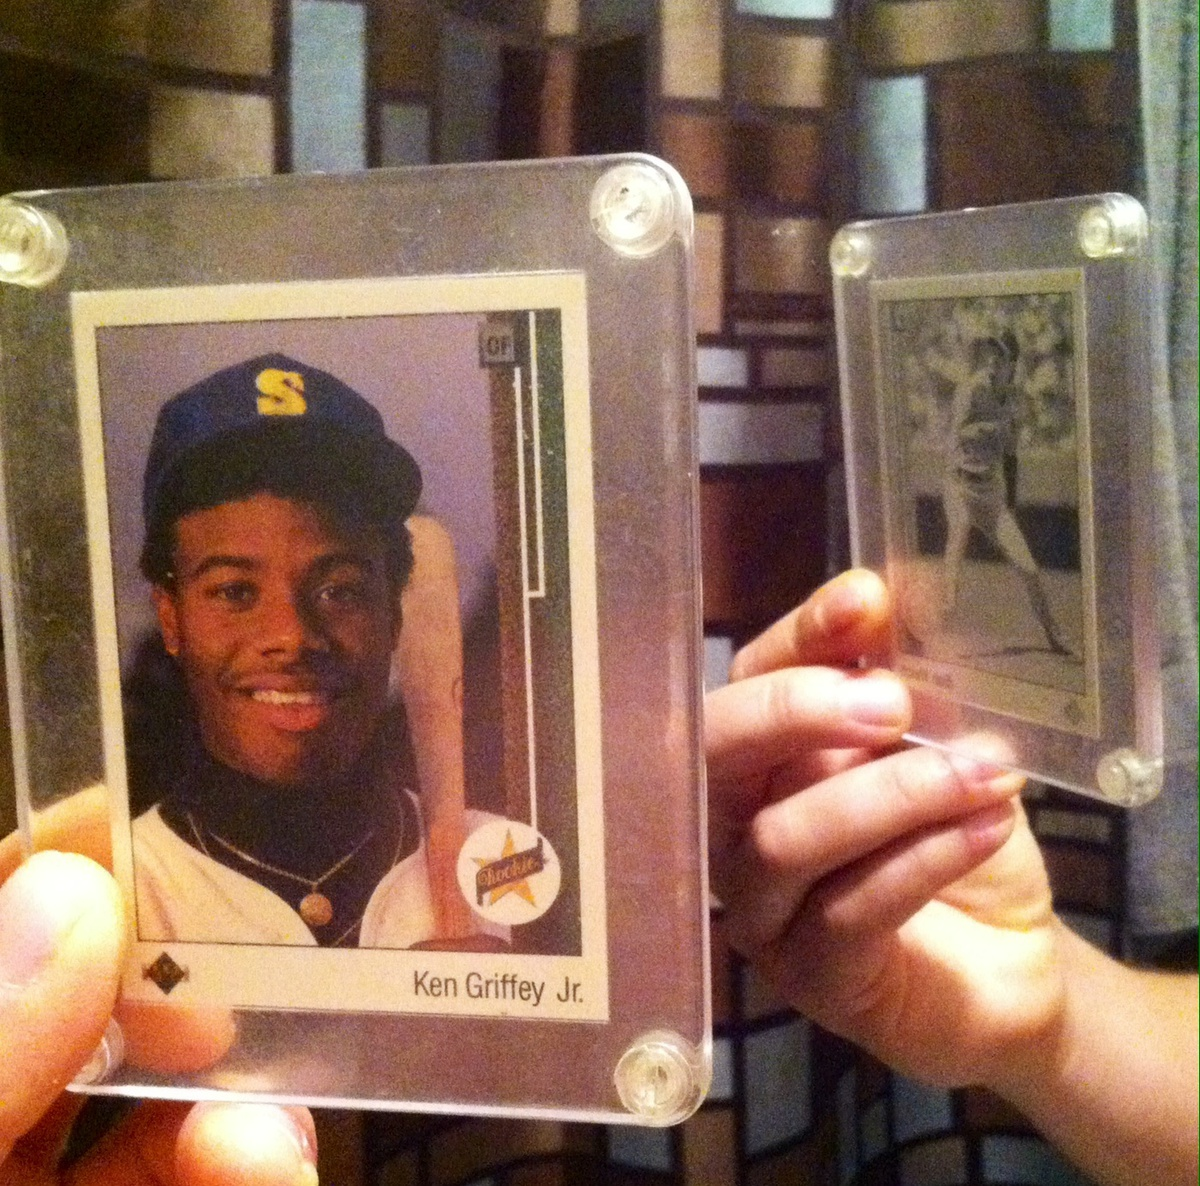 89 Ud Ken Griffey Jr Rare Misprint Error Collectors Weekly